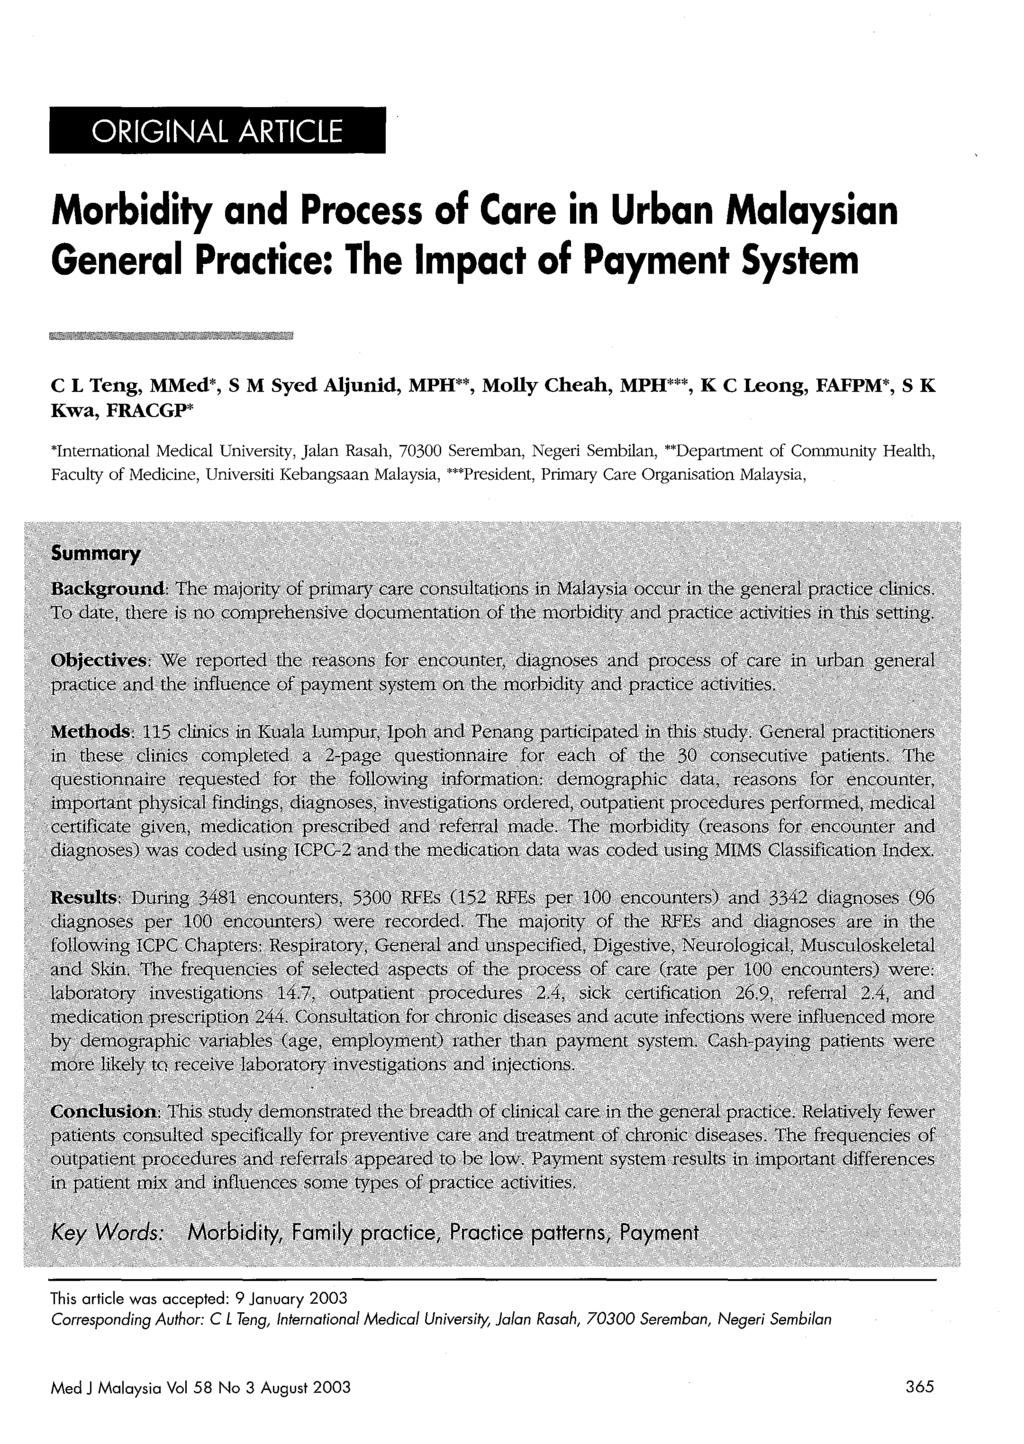 ORIGINAL ARTICLE Morbidity and Process of Care in Urban Malaysian General Practice: The Impact of Payment System C L Teng, MMed*, S M Syed Aljunid, MPH**, Molly Cheah, MPH***, K C Leong, FAFPM*, S K